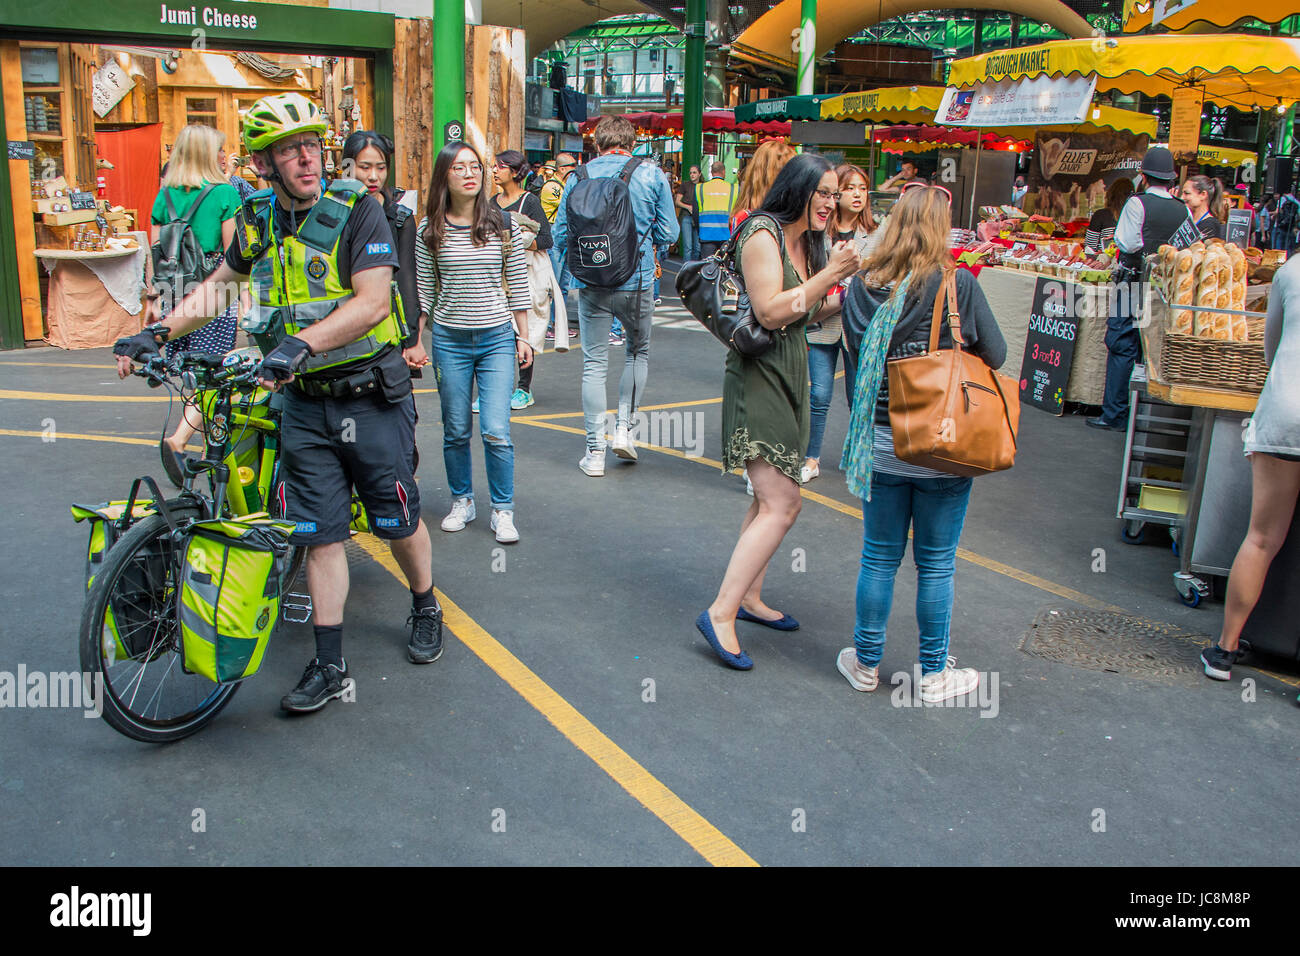 London, UK. 14th June, 2017. Authorities remain vigilant with Police and Paramedics highly visible - The market - Stock Image